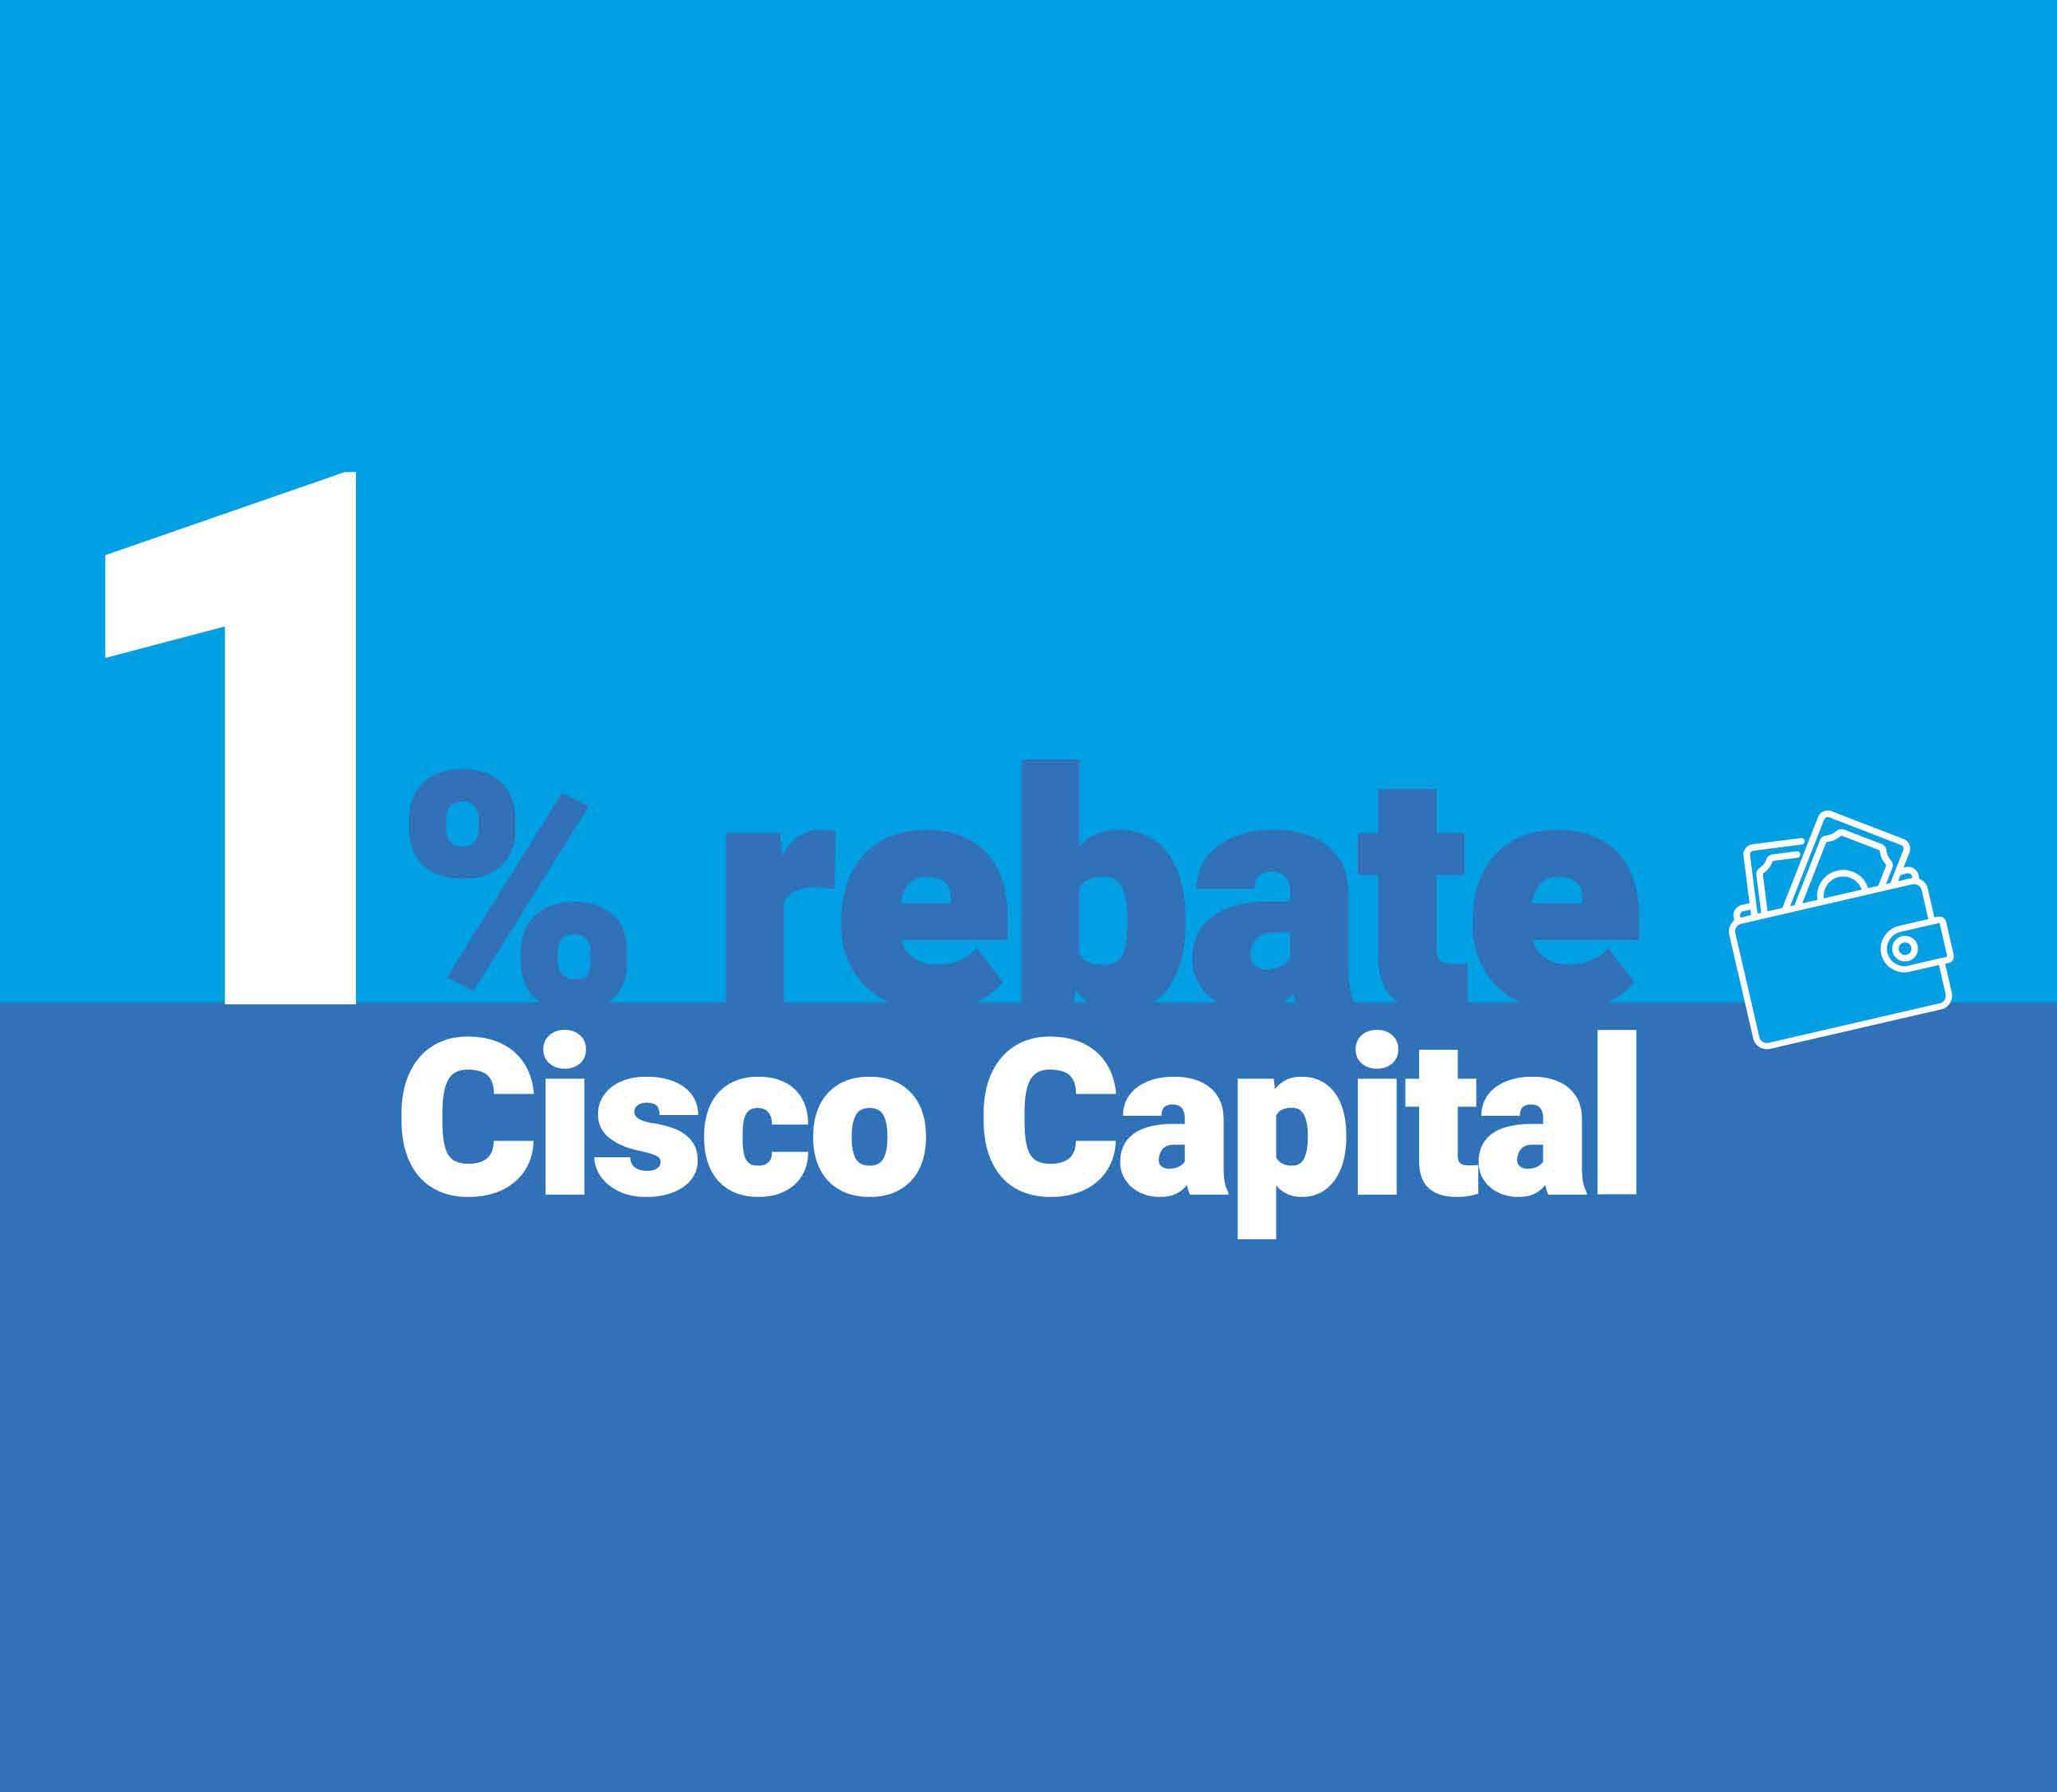 Cisco Capital Financing & easylease Featured Image